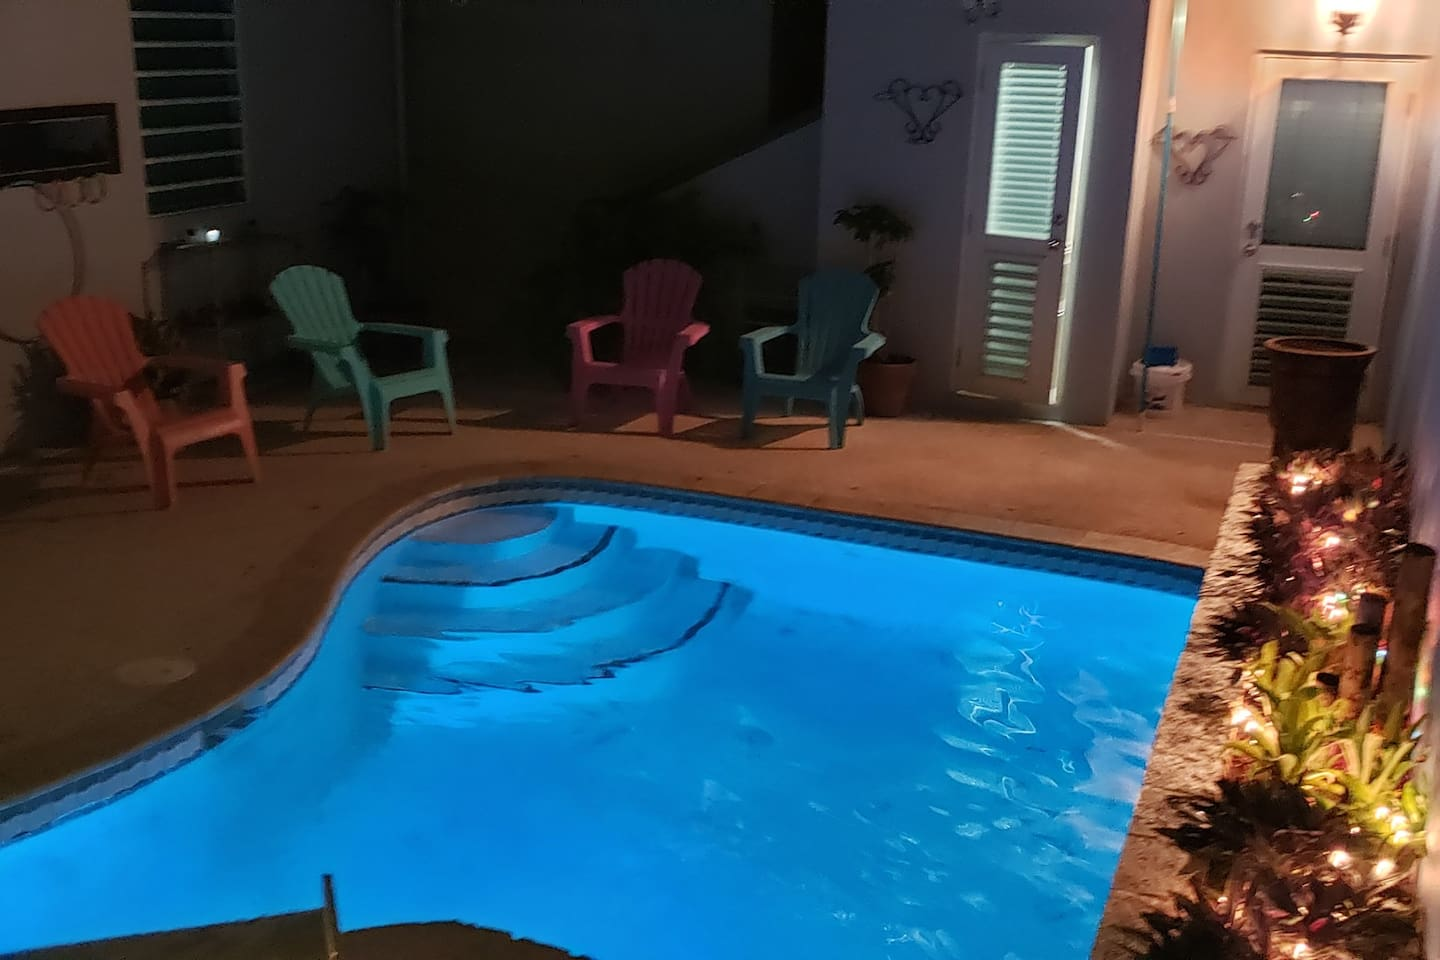 The pool at night with fun lights.